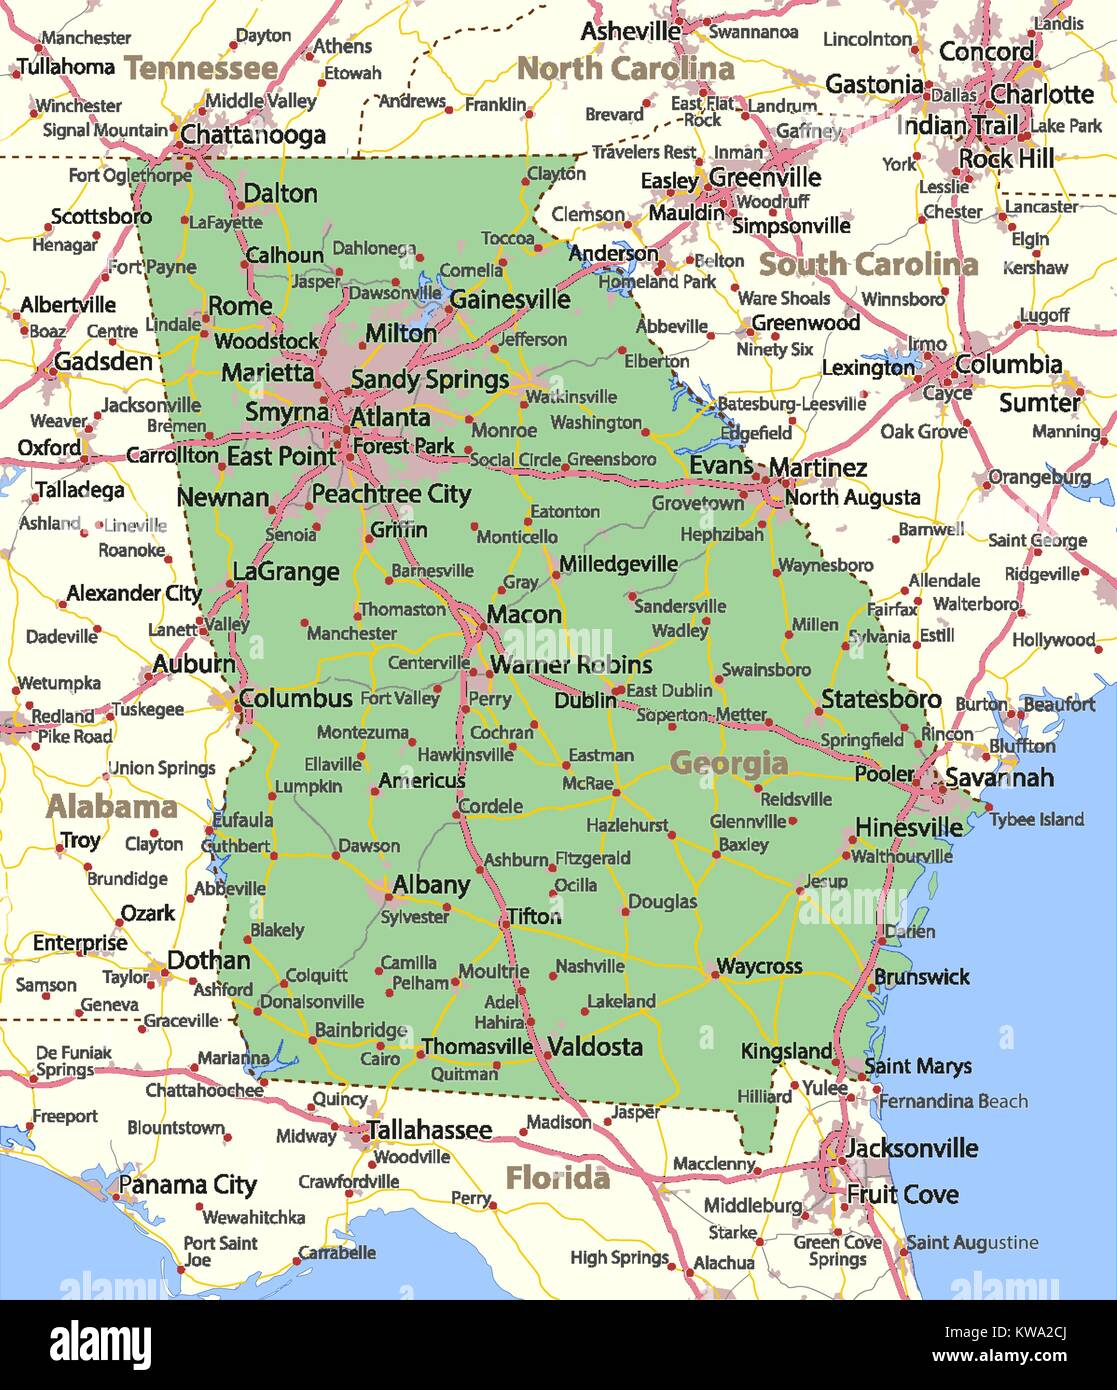 Map of Georgia. Shows country borders, urban areas, place ... Show Map Of Georgia on big printable maps of georgia, art map of georgia, map of i 75 through georgia, driving map of georgia, full map of georgia, usa of georgia, detail map of georgia, map of north georgia, show map kansas, snow map of georgia, wma hunting areas in georgia, model map of georgia, show map south carolina, large map of georgia, casinos in north georgia, elevation topographic map of georgia, blue map of georgia, map of military bases in georgia, show map florida, land features of georgia,